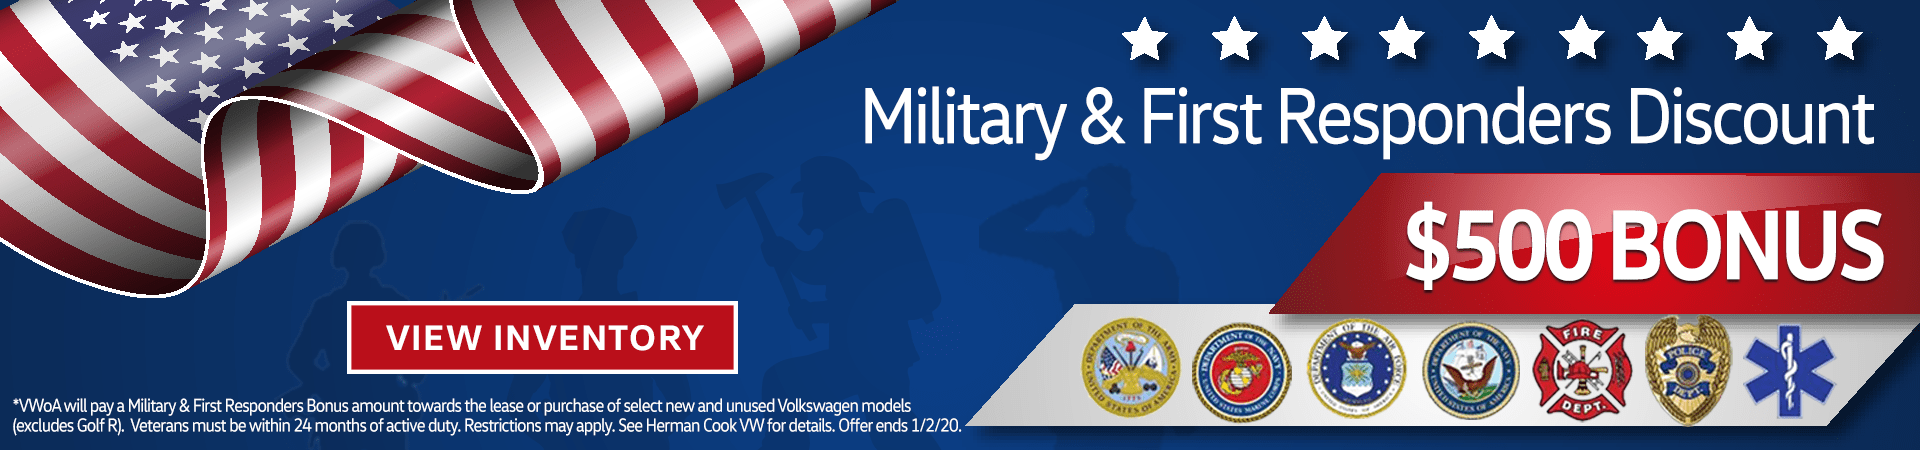 Military and First Responder $500 Bonus